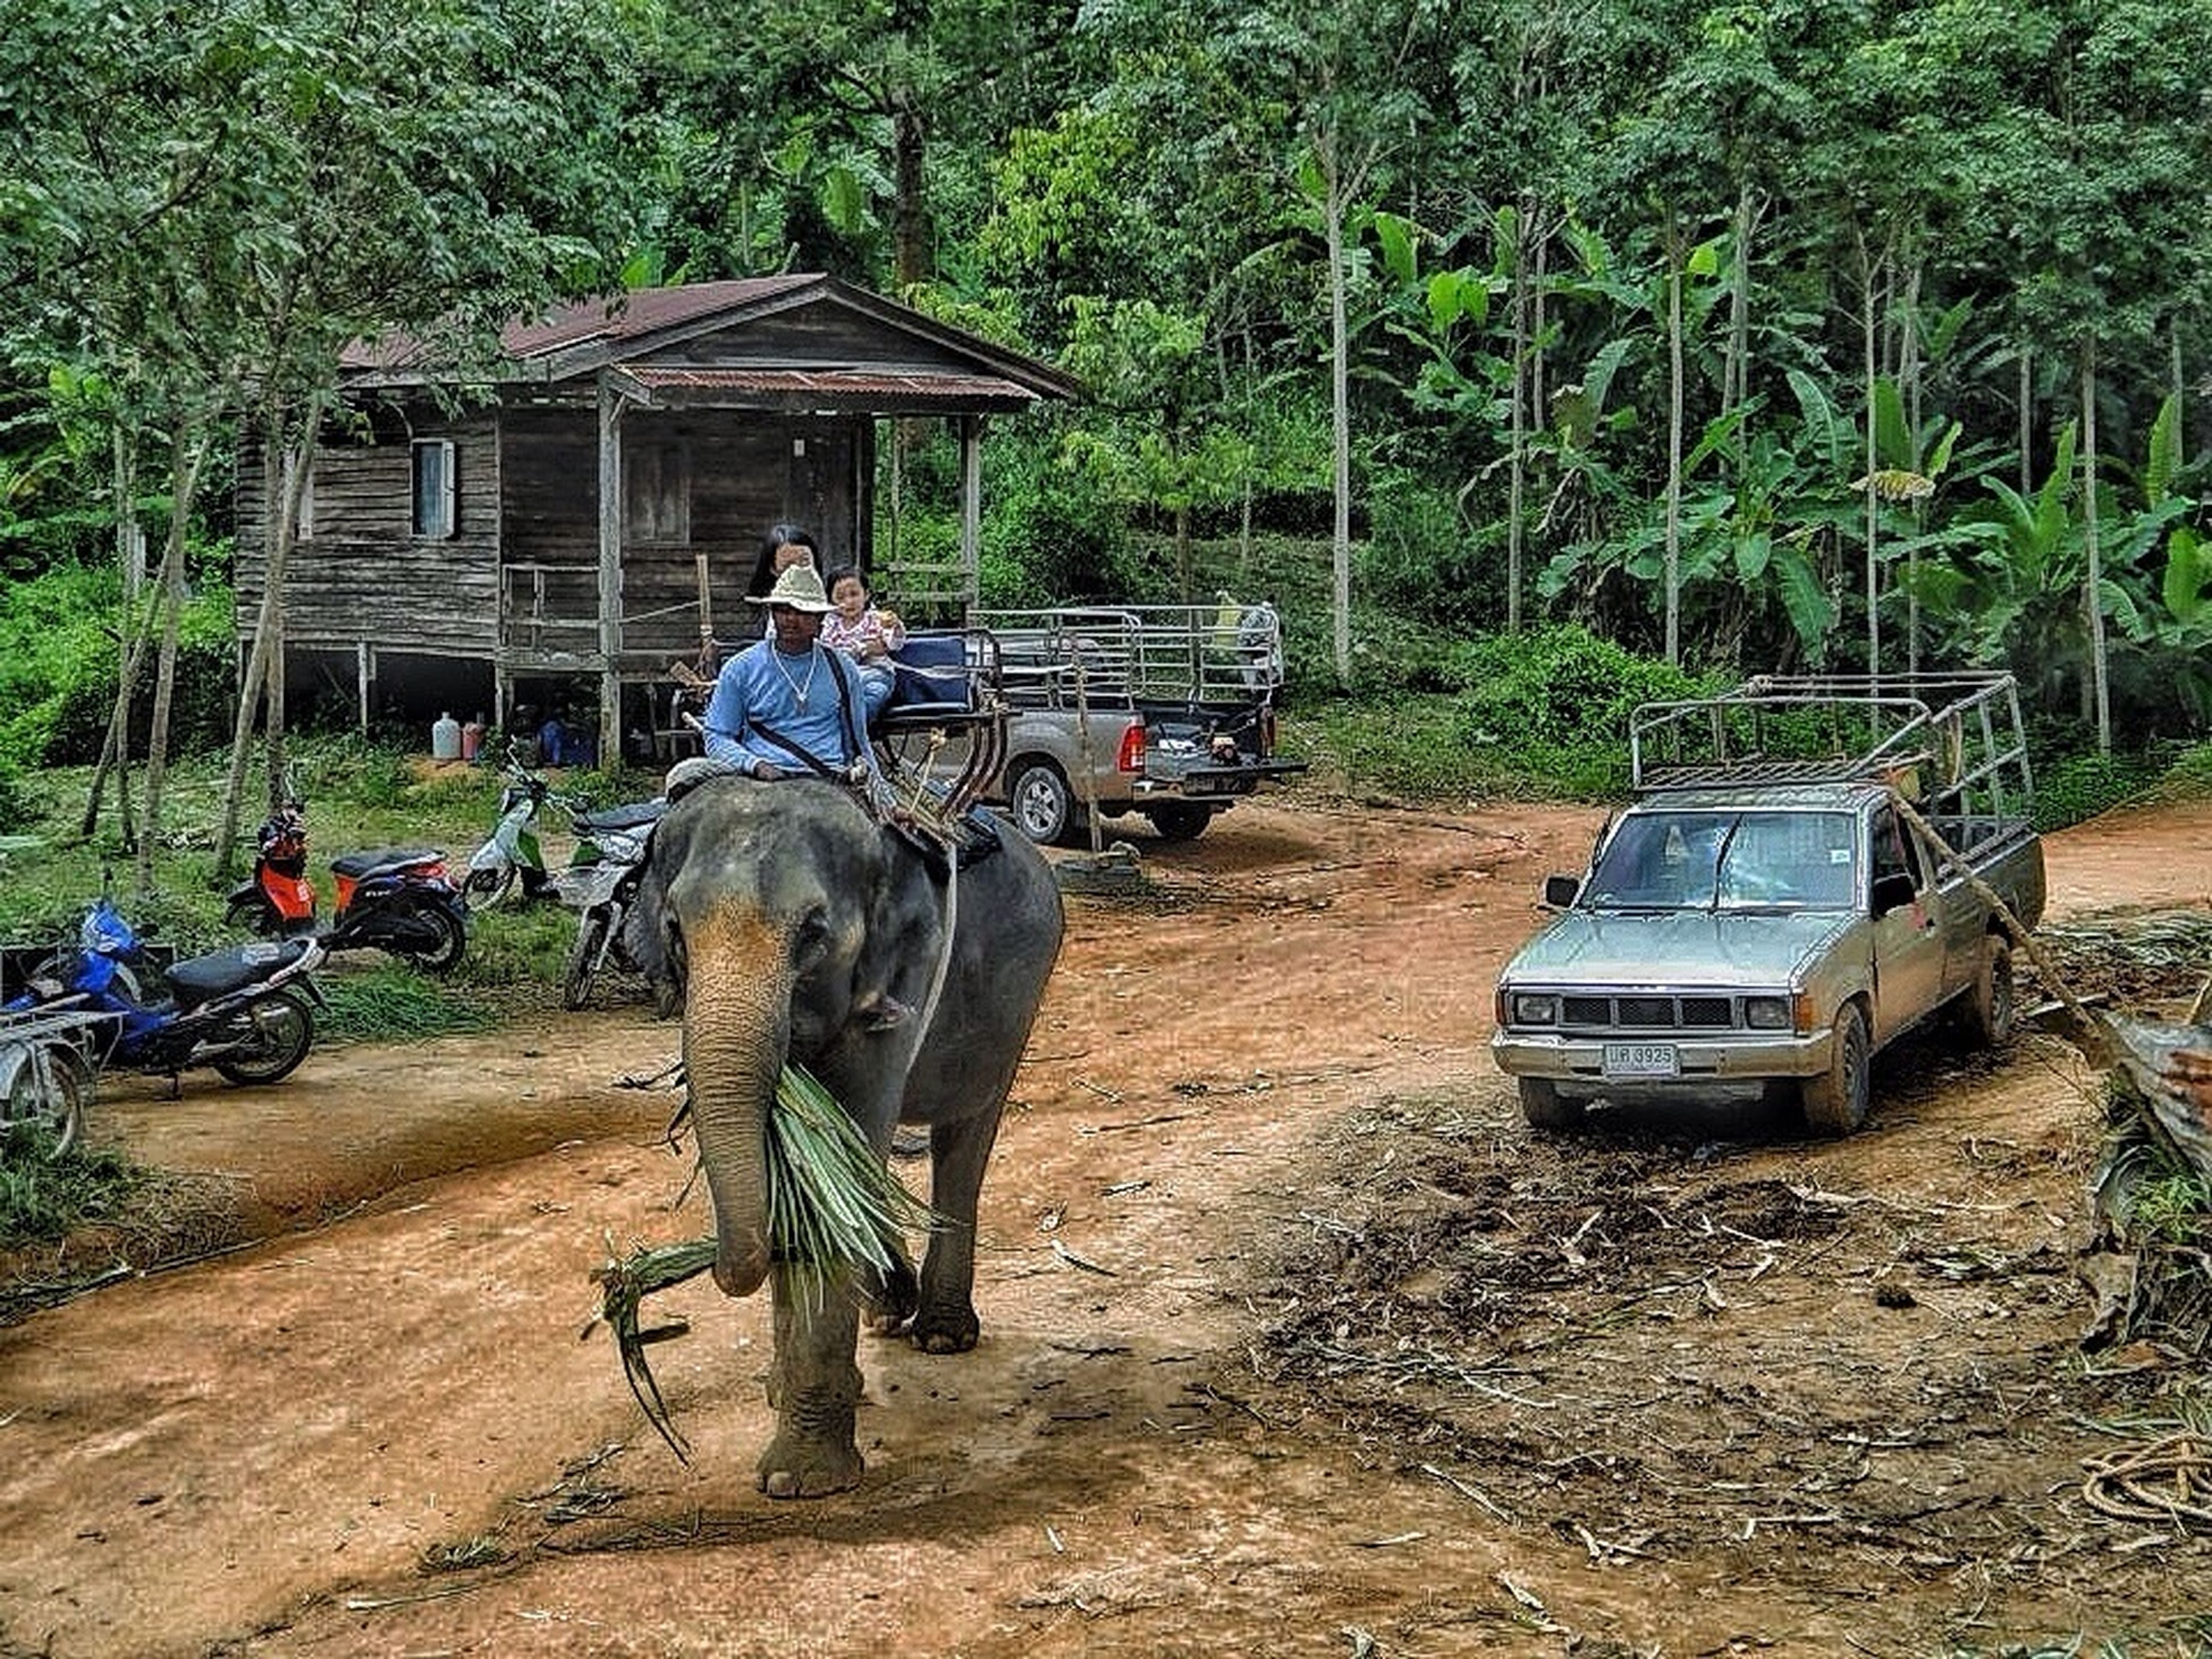 full length, men, tree, lifestyles, land vehicle, transportation, leisure activity, mode of transport, rear view, walking, casual clothing, horse, mammal, riding, domestic animals, person, working animal